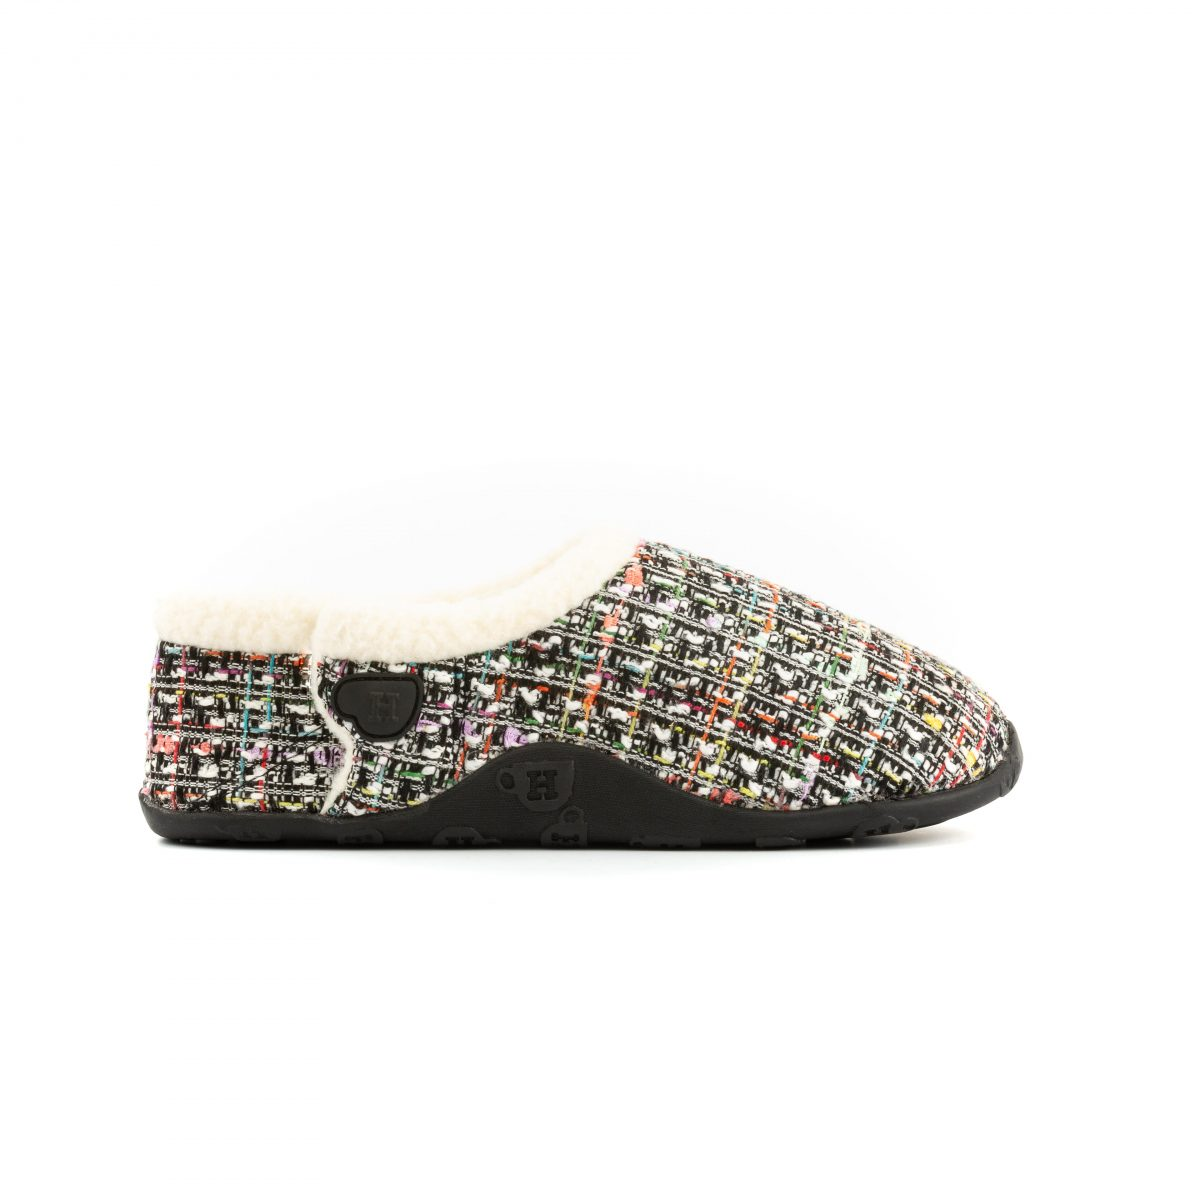 Coco Wht pnk blk tweed W 3 mr